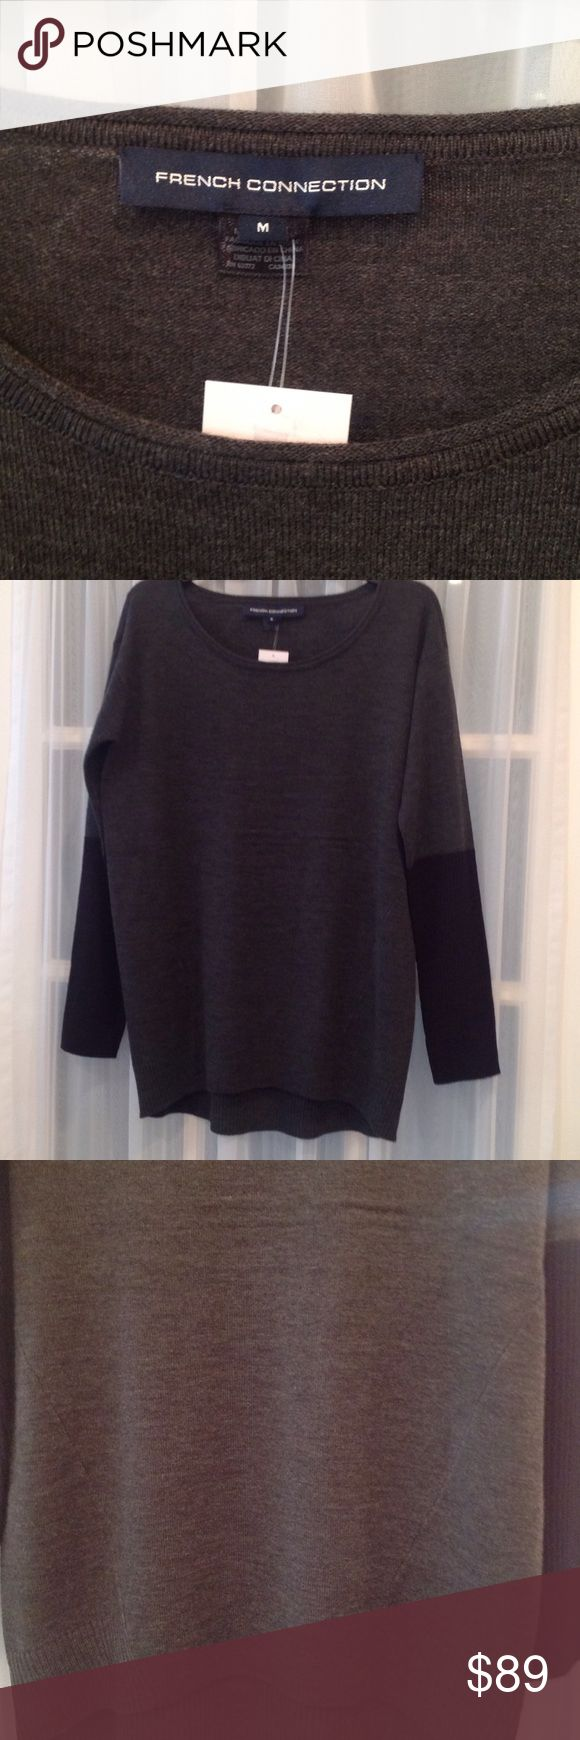 NWT FRENCH CONNECTION COLOR BLOCK SWEATER This is a beautiful hi low gray sweater with black sleeves. Has darts down the front for a slimmer looking fit. It will look great with black leggings. It is machine washable. Made of 100% soft spun acrylic. Very nice. Sweaters Crew & Scoop Necks